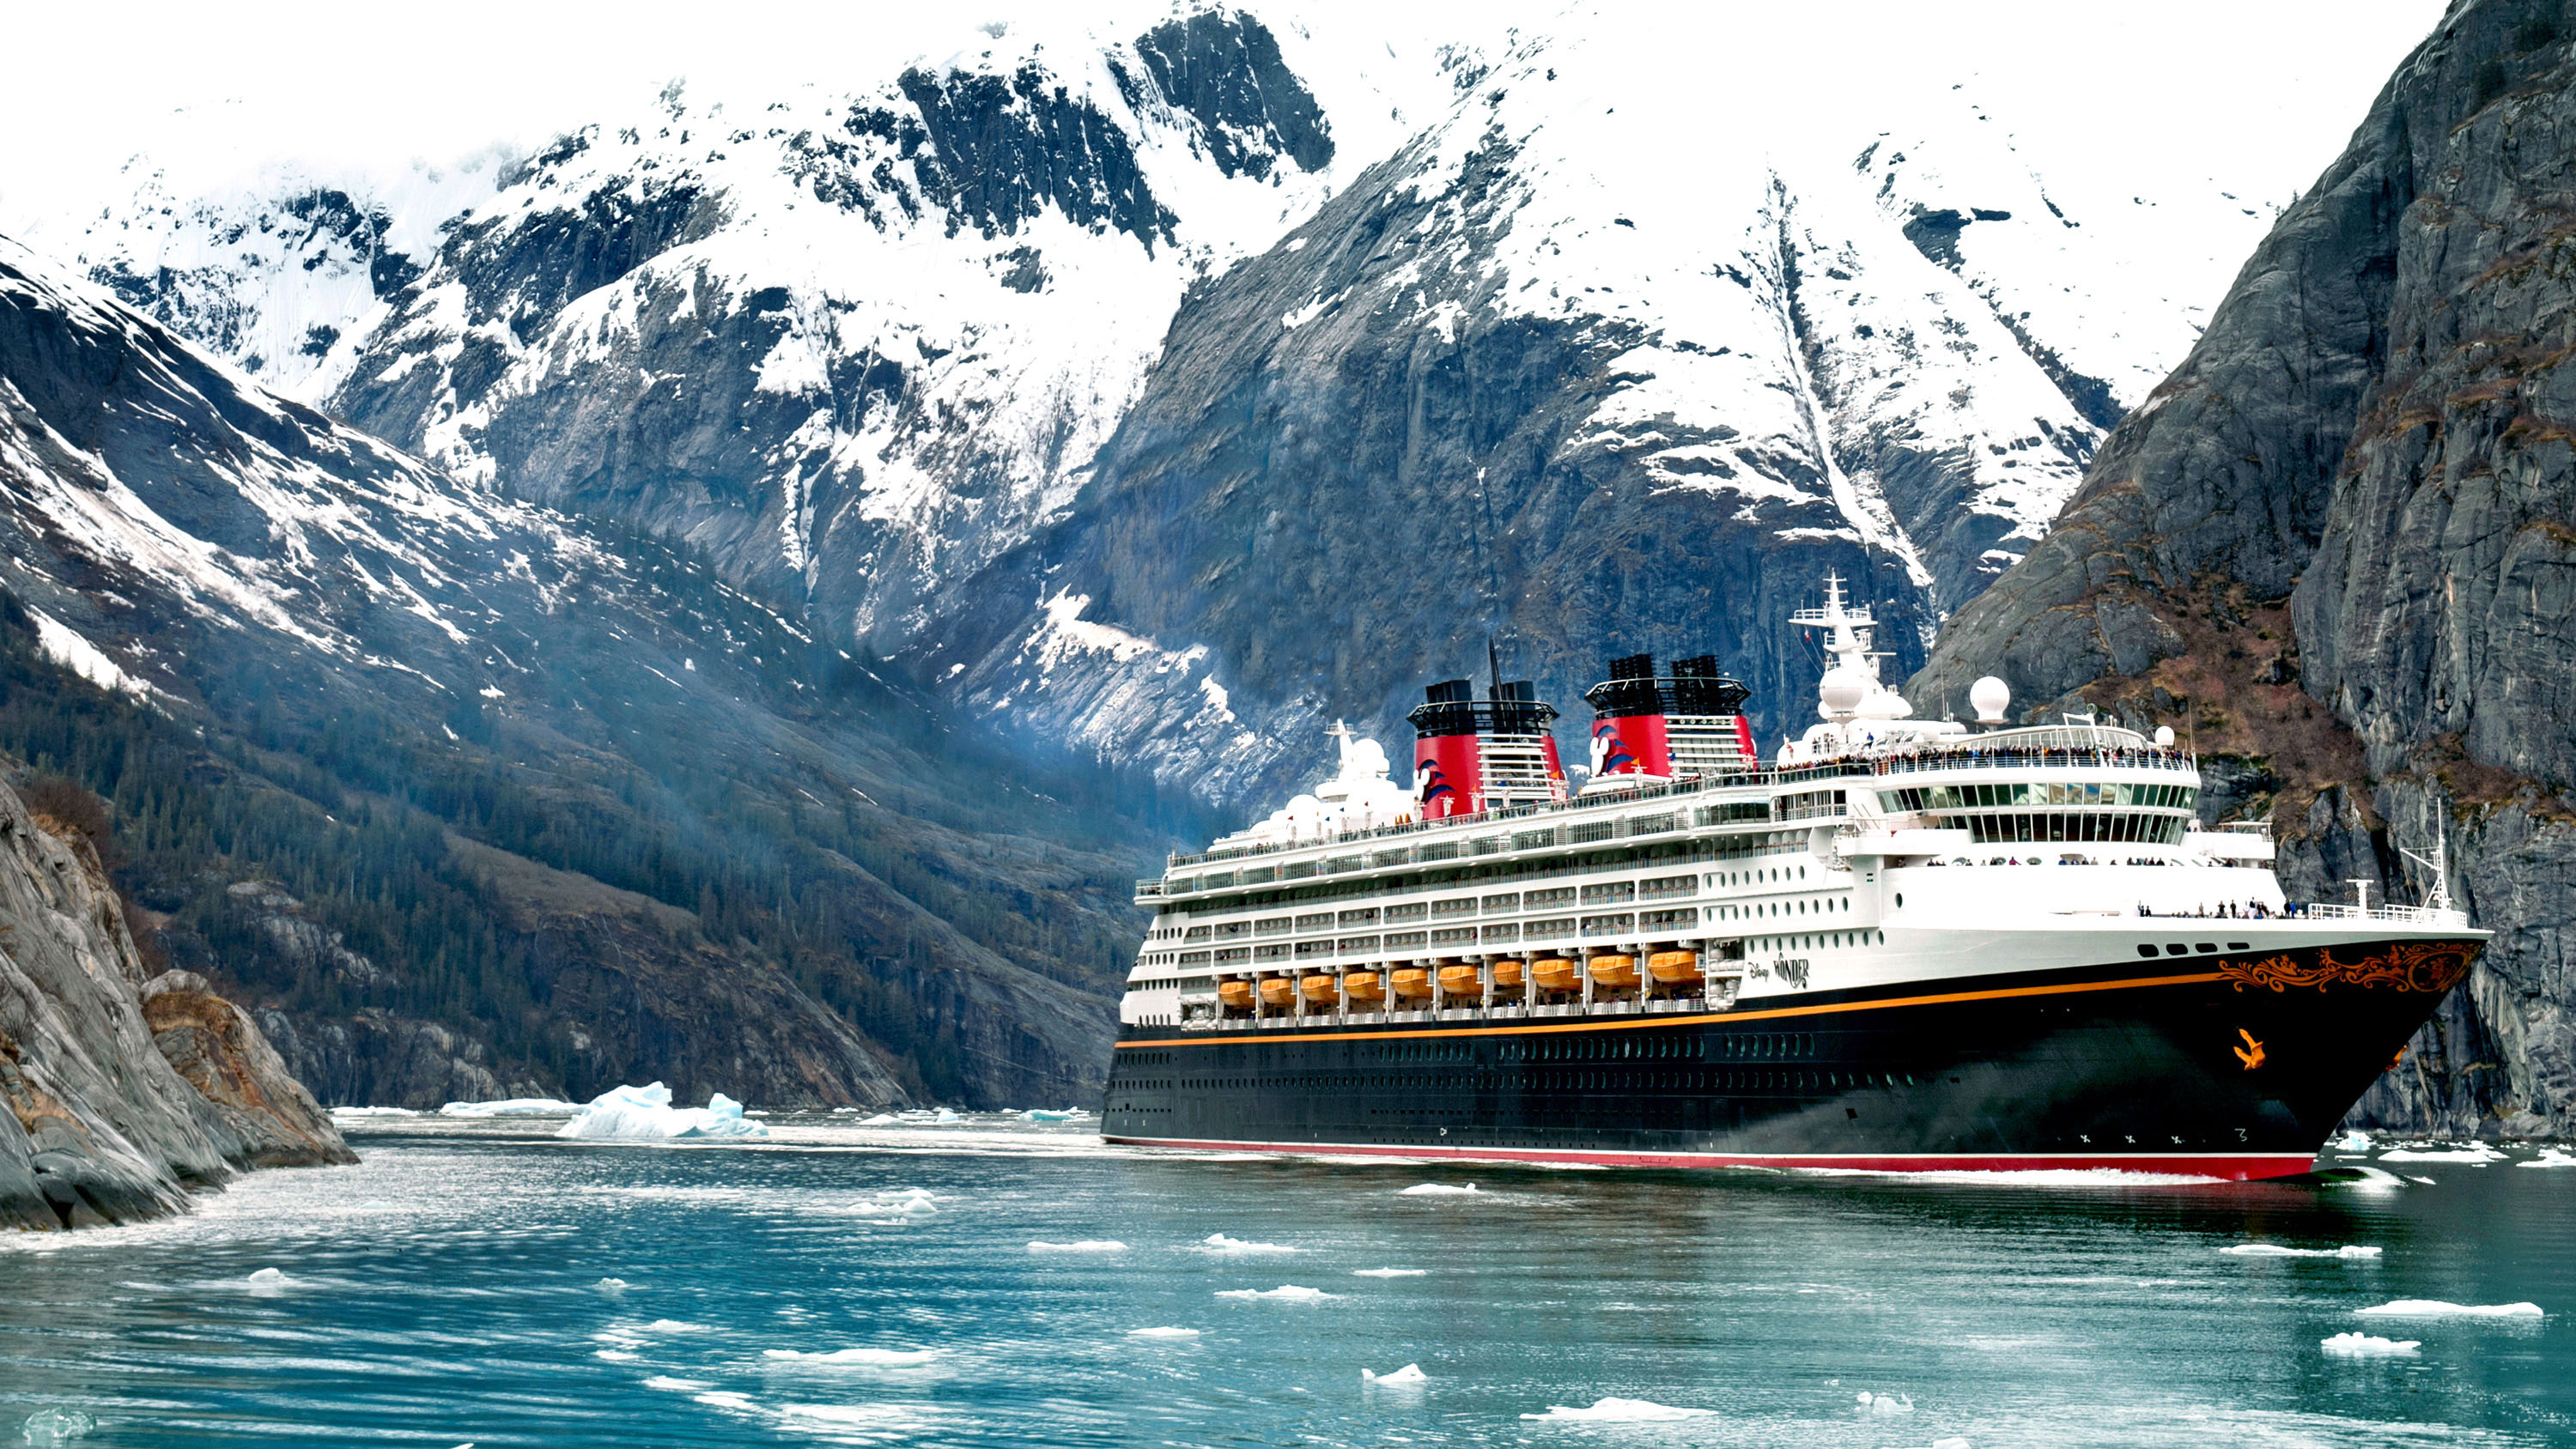 Disney Cruise Line Departures Suspended Through April 28, 2020